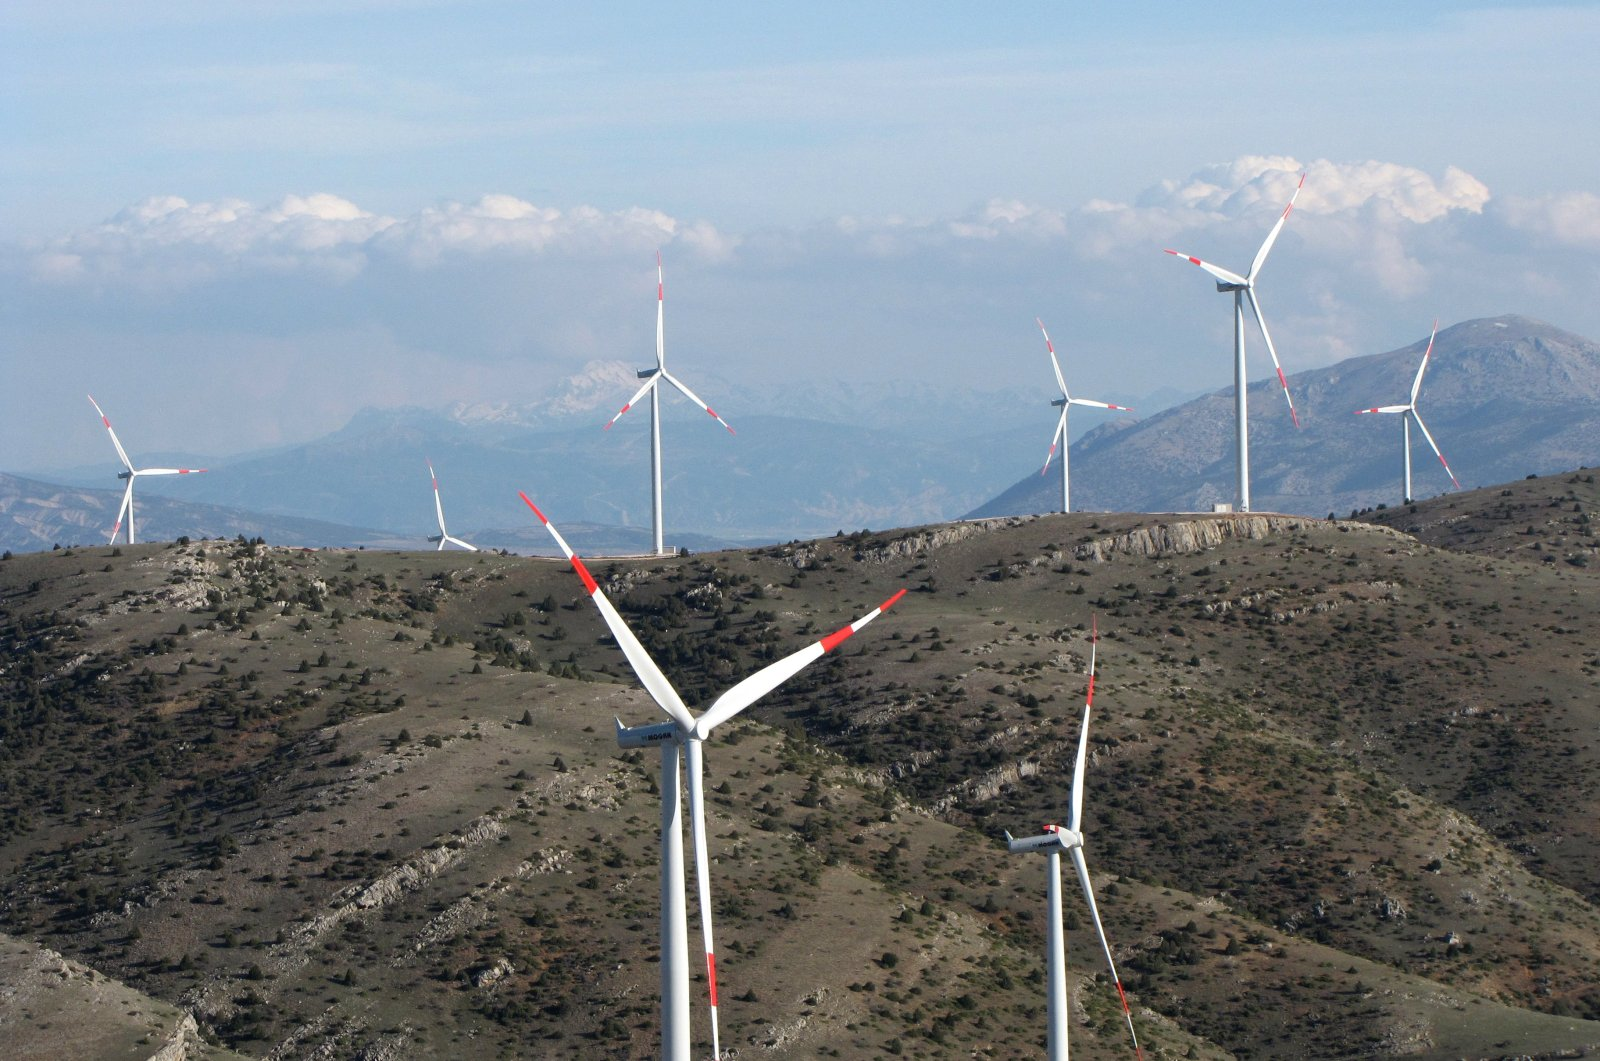 Wind turbines seen in Dinar district of Turkey's western province of Afyonkarahisar, March 28, 2019. (AA Photo)